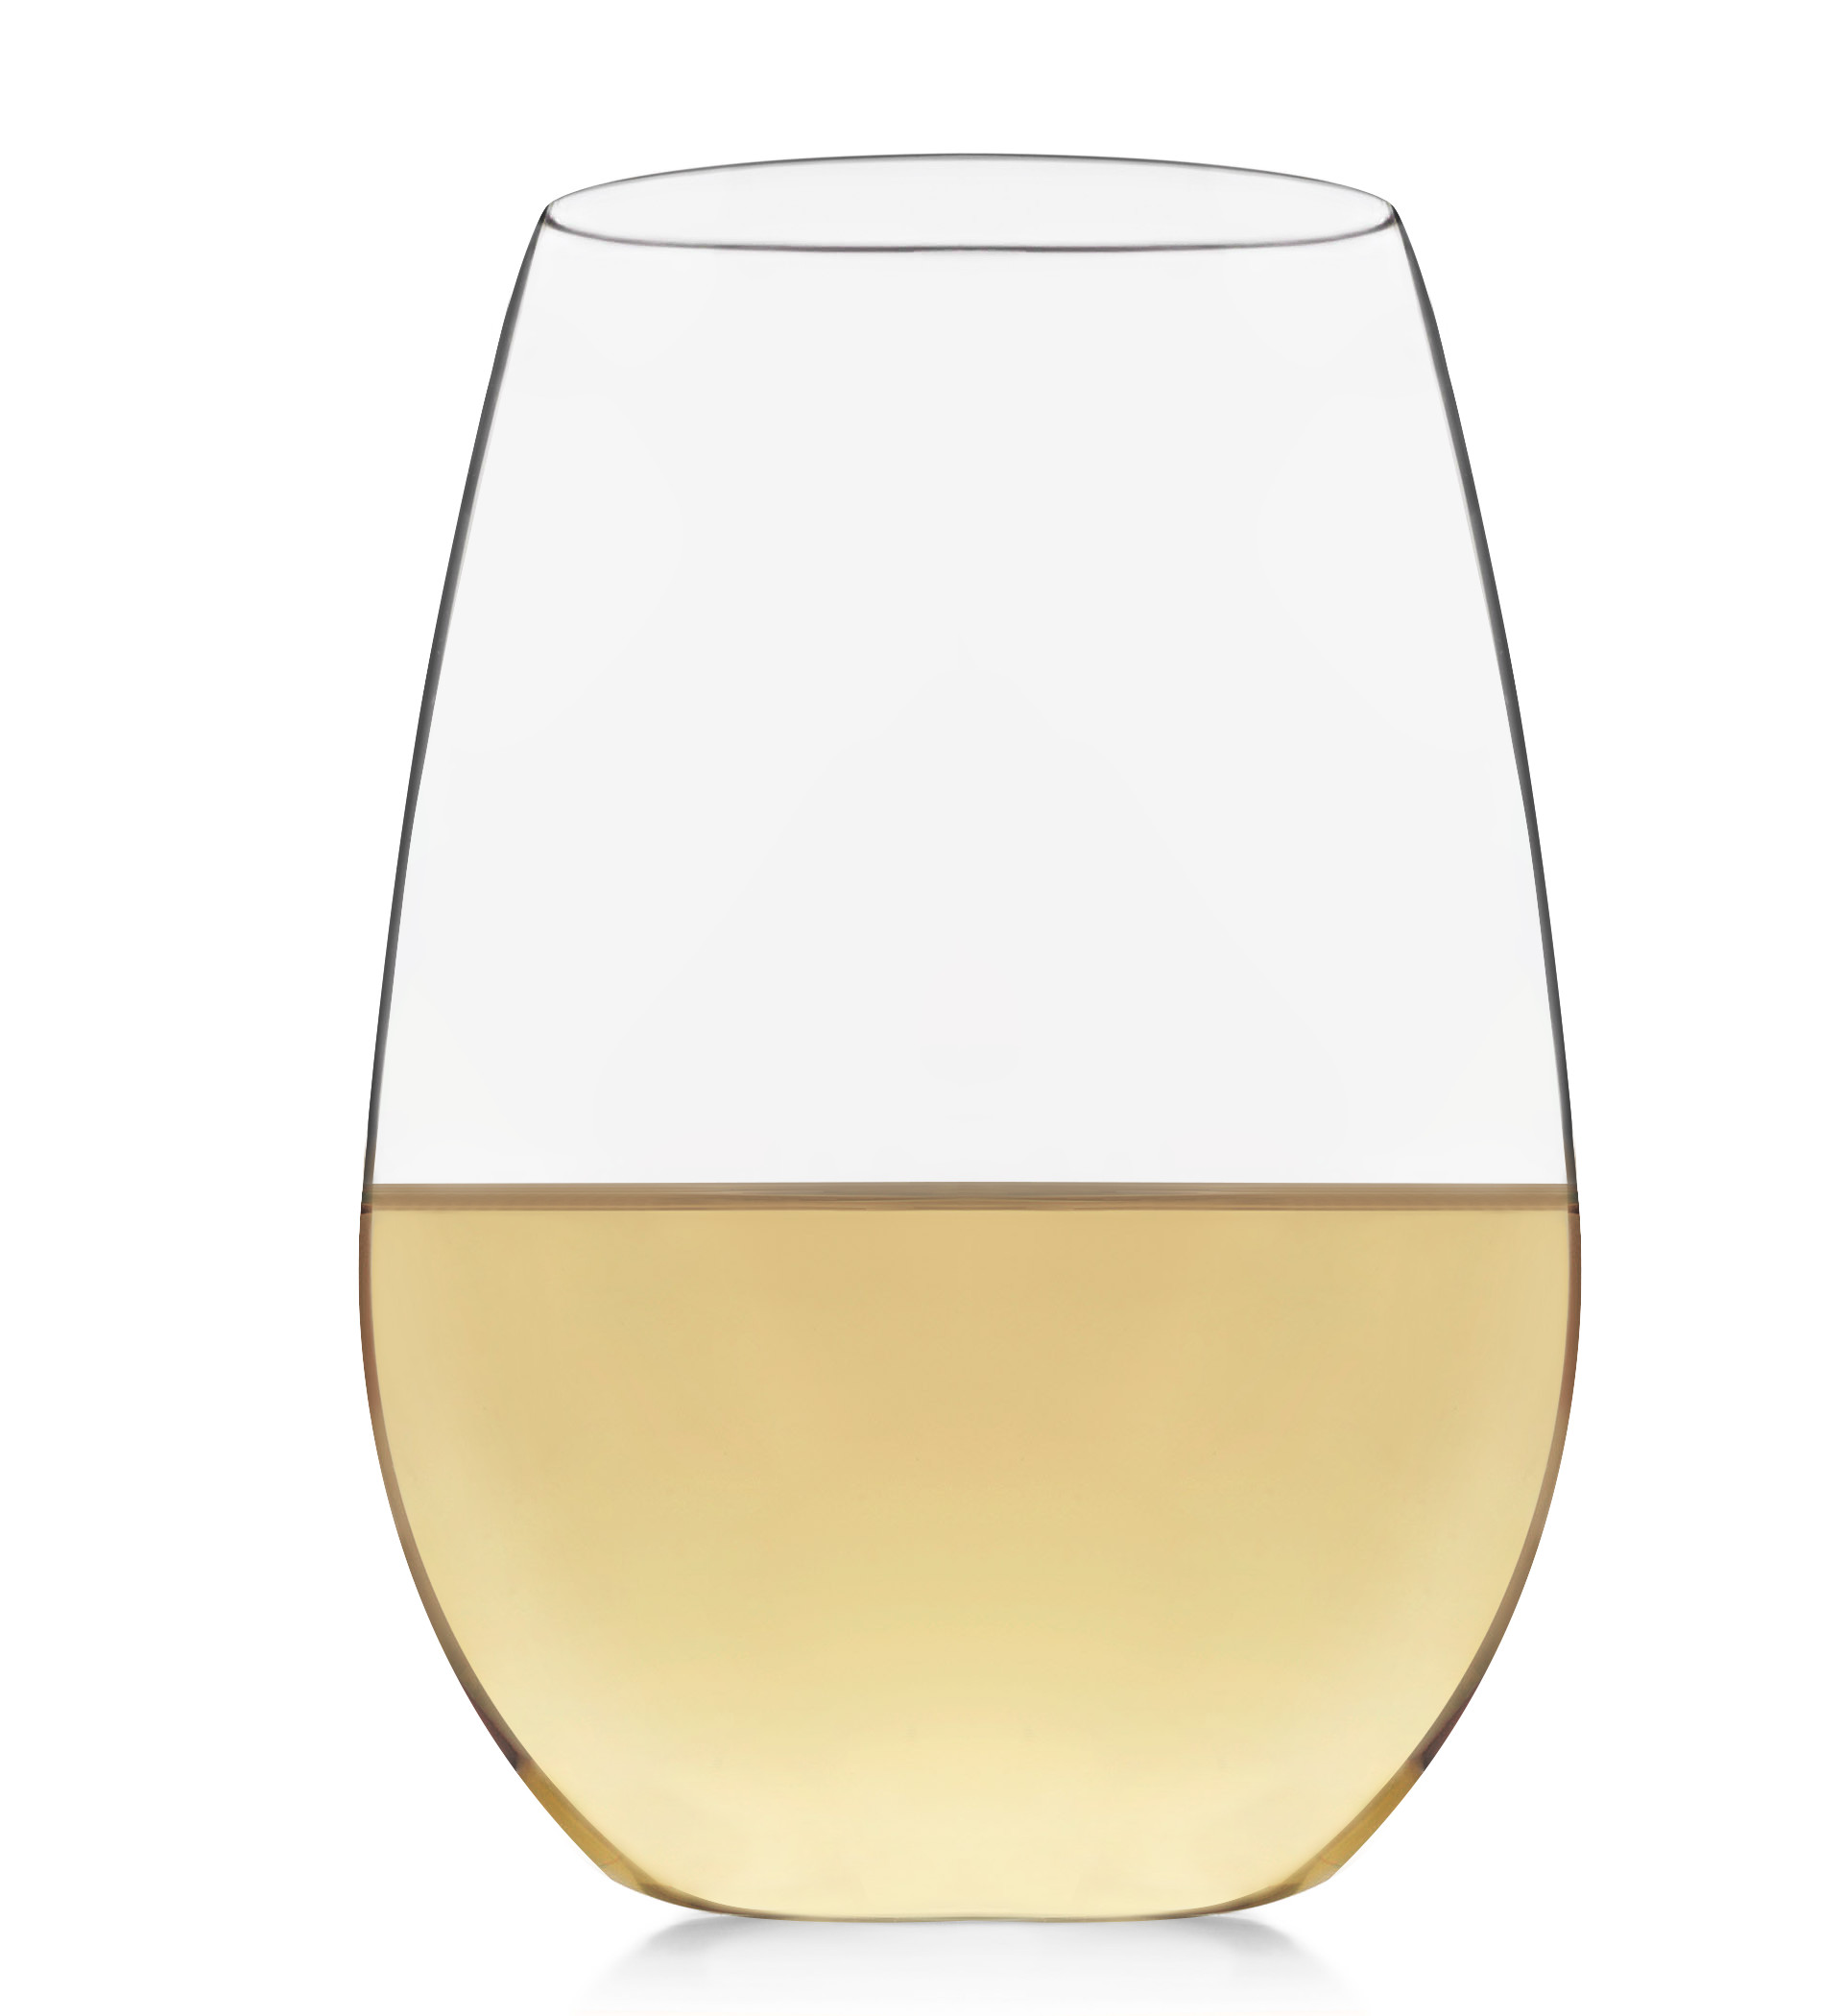 Libbey Signature Kentfield Stemless White Wine Glasses, Set of 4 by Libbey